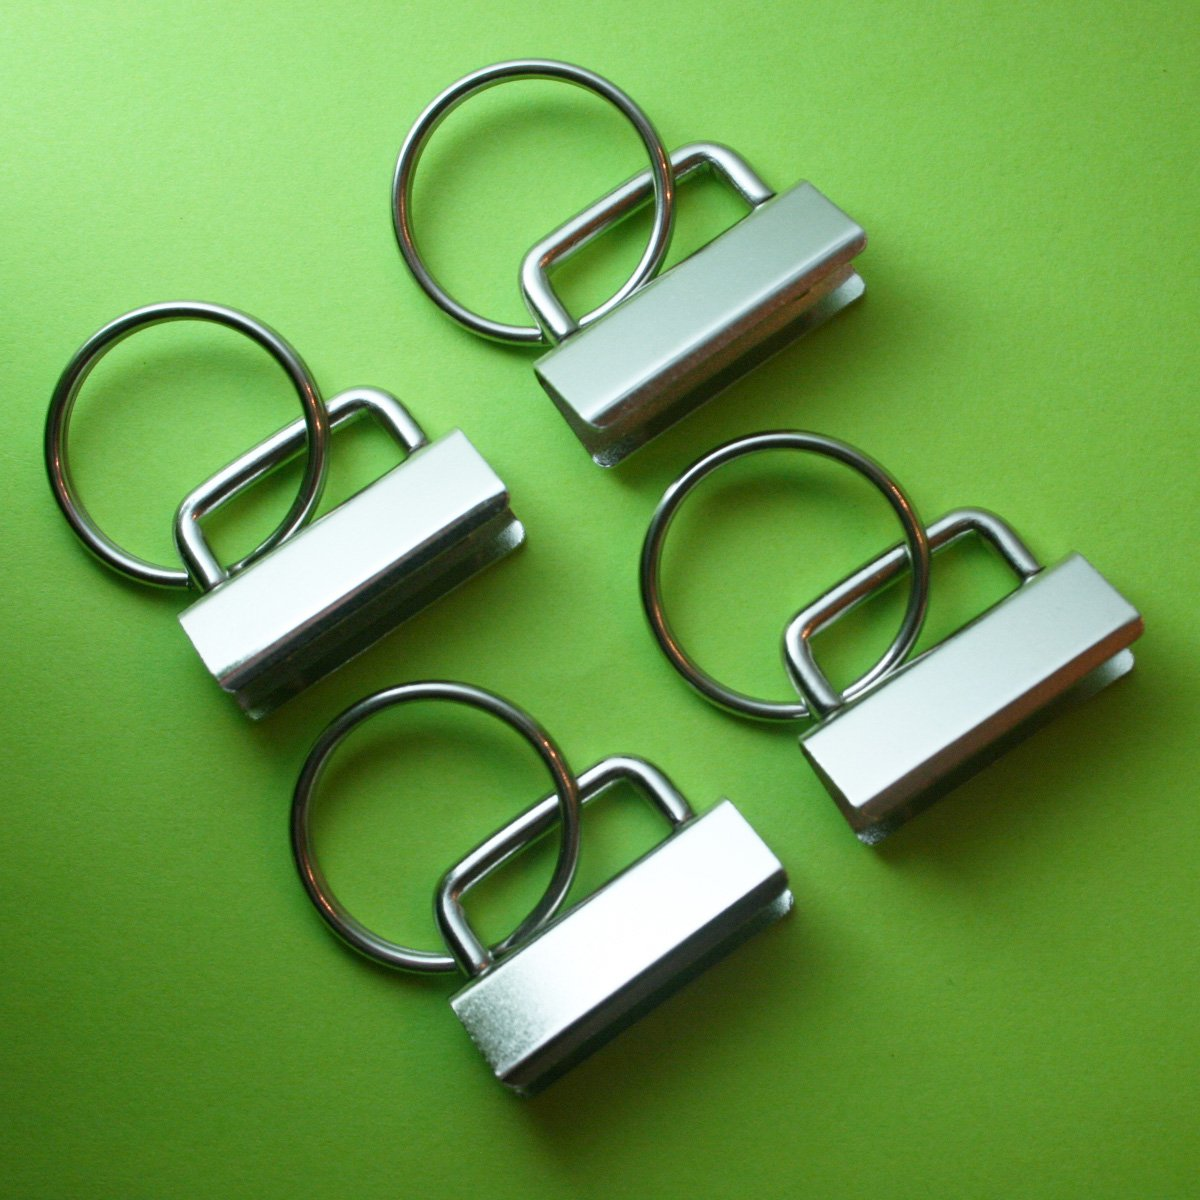 100 Sets - Key Fob Hardware with Split Ring - 1.25 Inch Wide